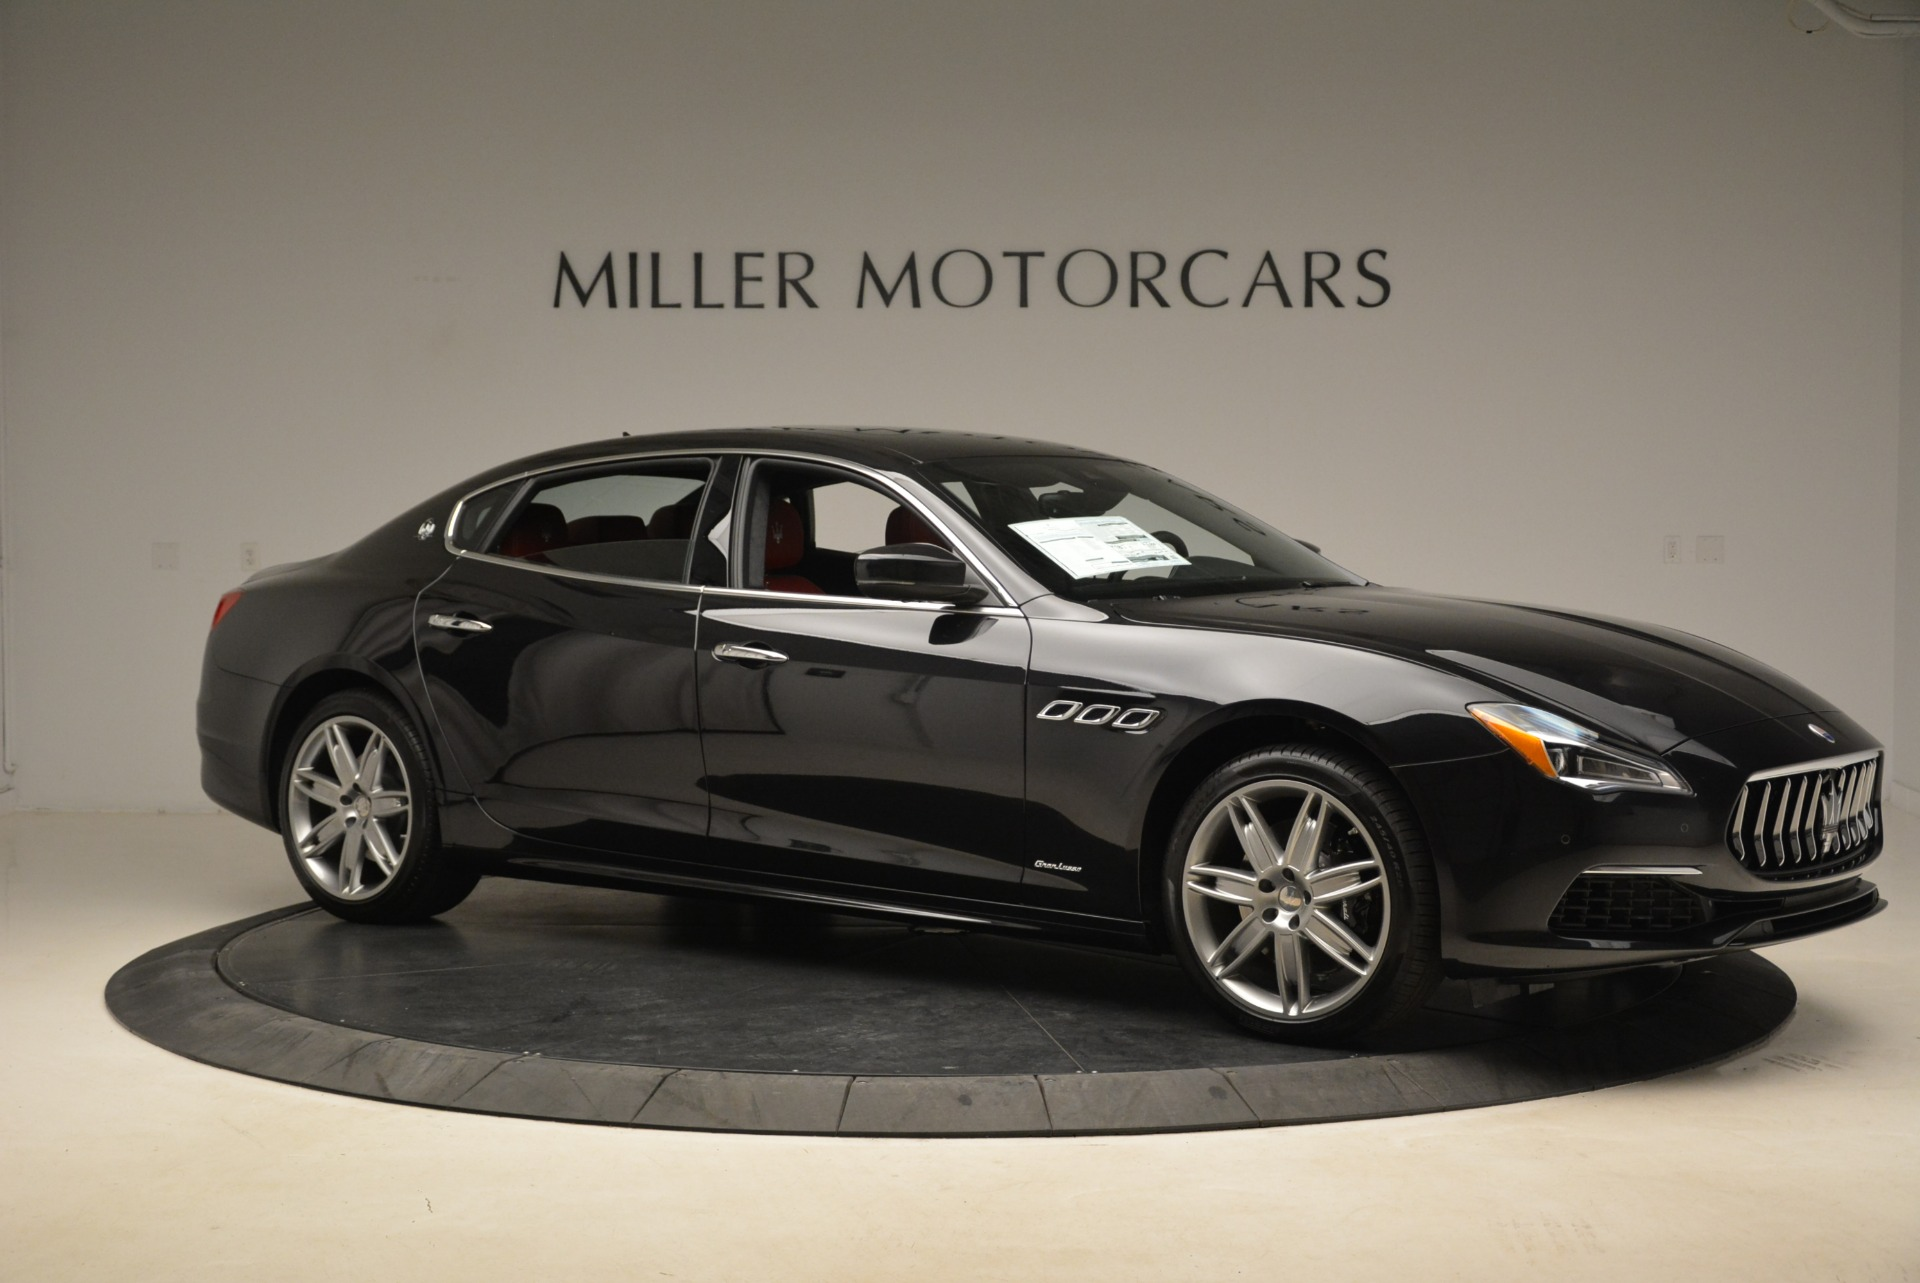 New 2018 Maserati Quattroporte S Q4 GranLusso For Sale In Greenwich, CT. Alfa Romeo of Greenwich, M2164 2296_p10